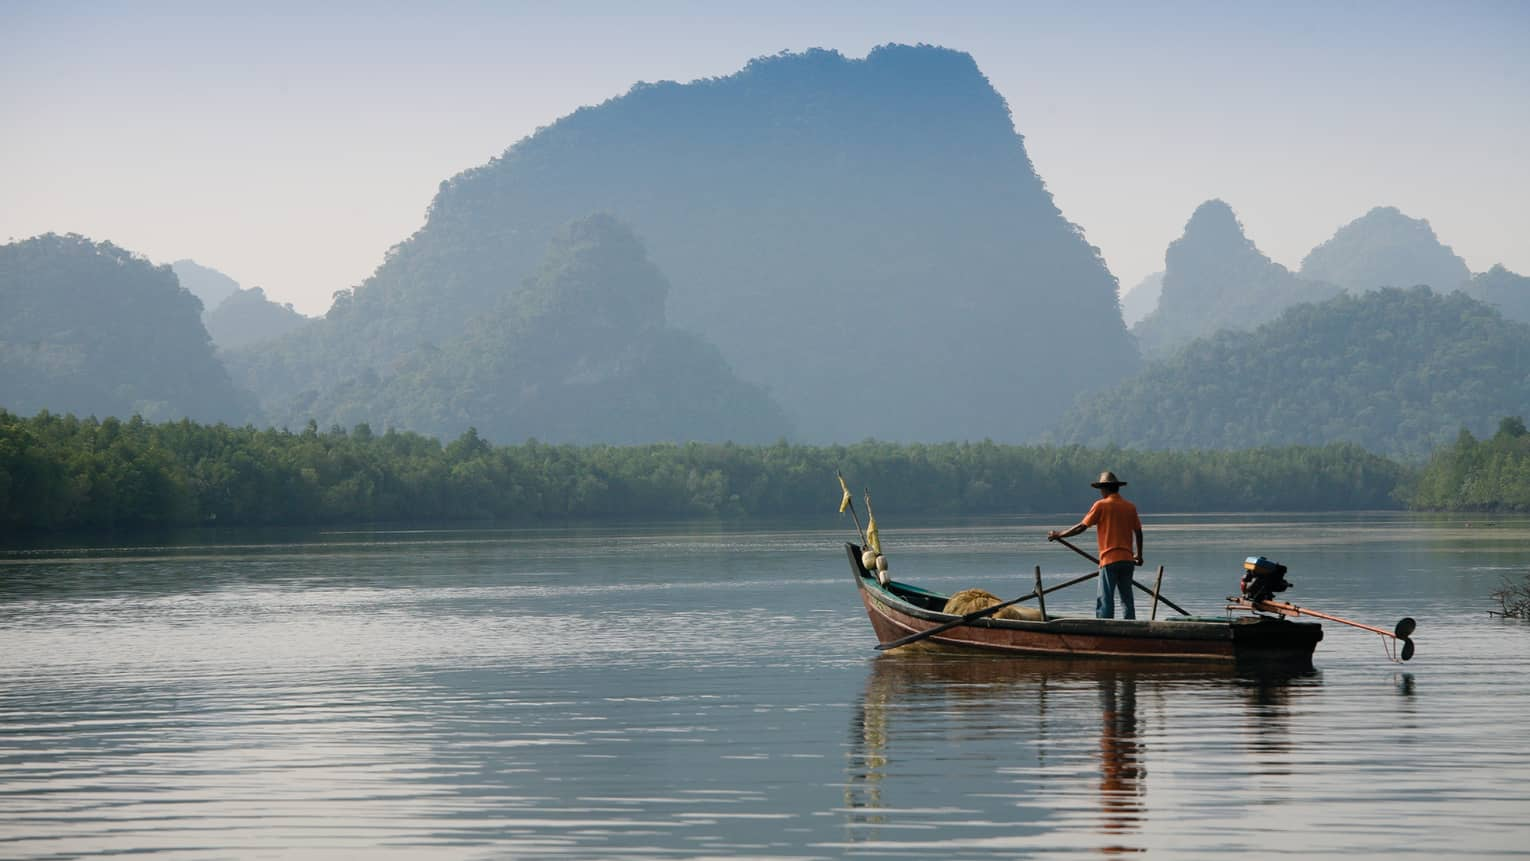 Man in a boat on Langkawi river with mountains in the background